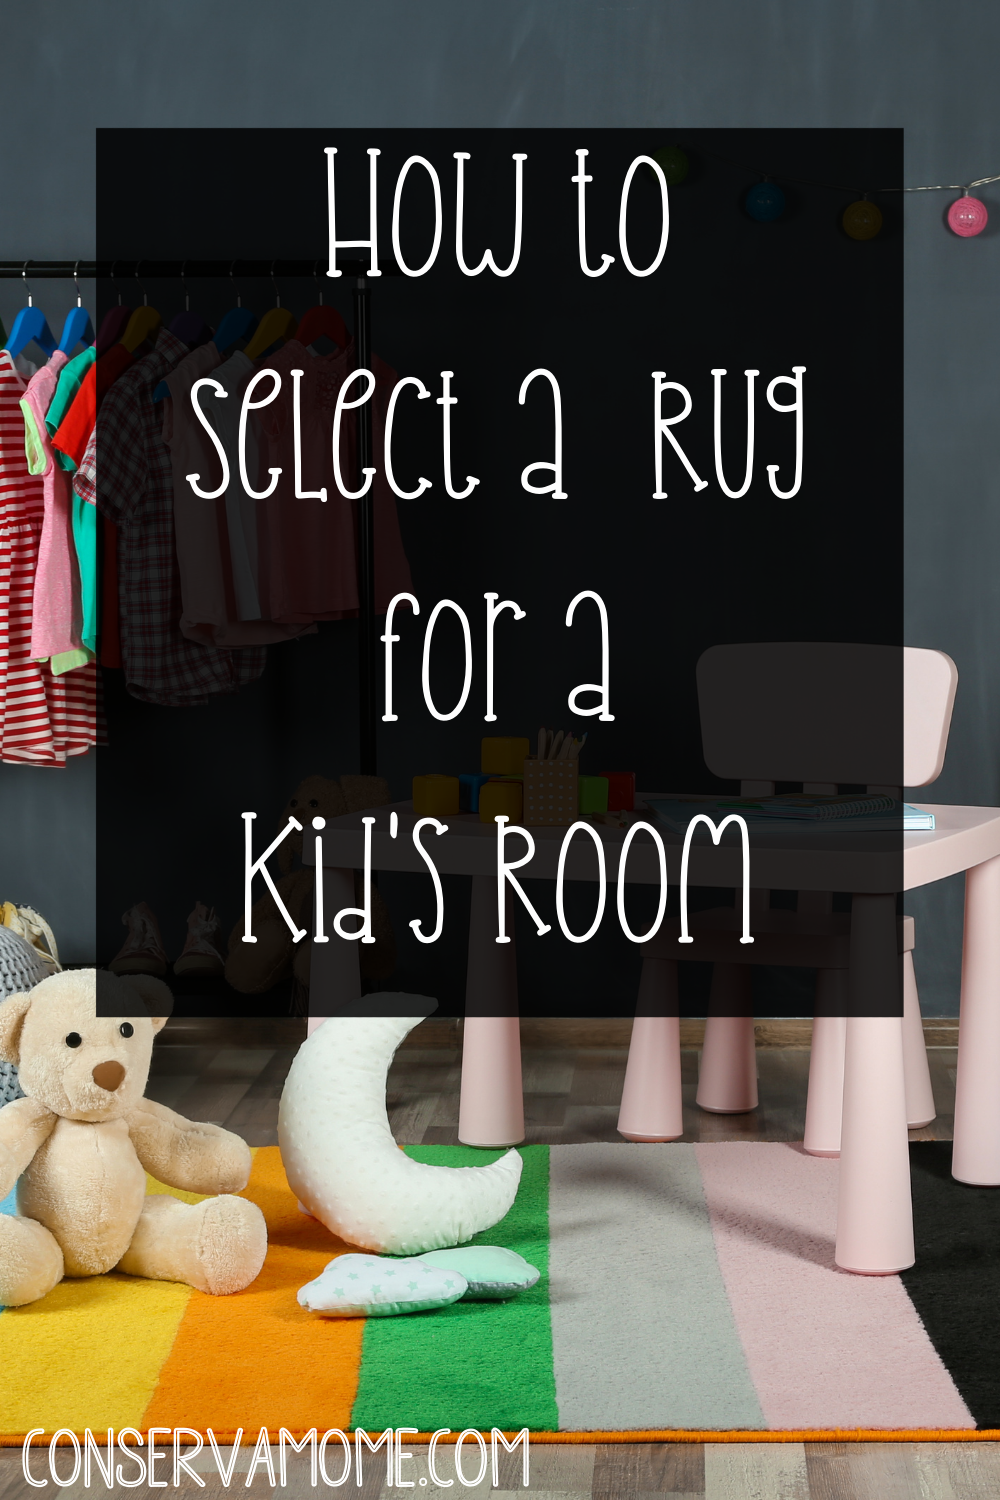 How to select a rug for a kids room